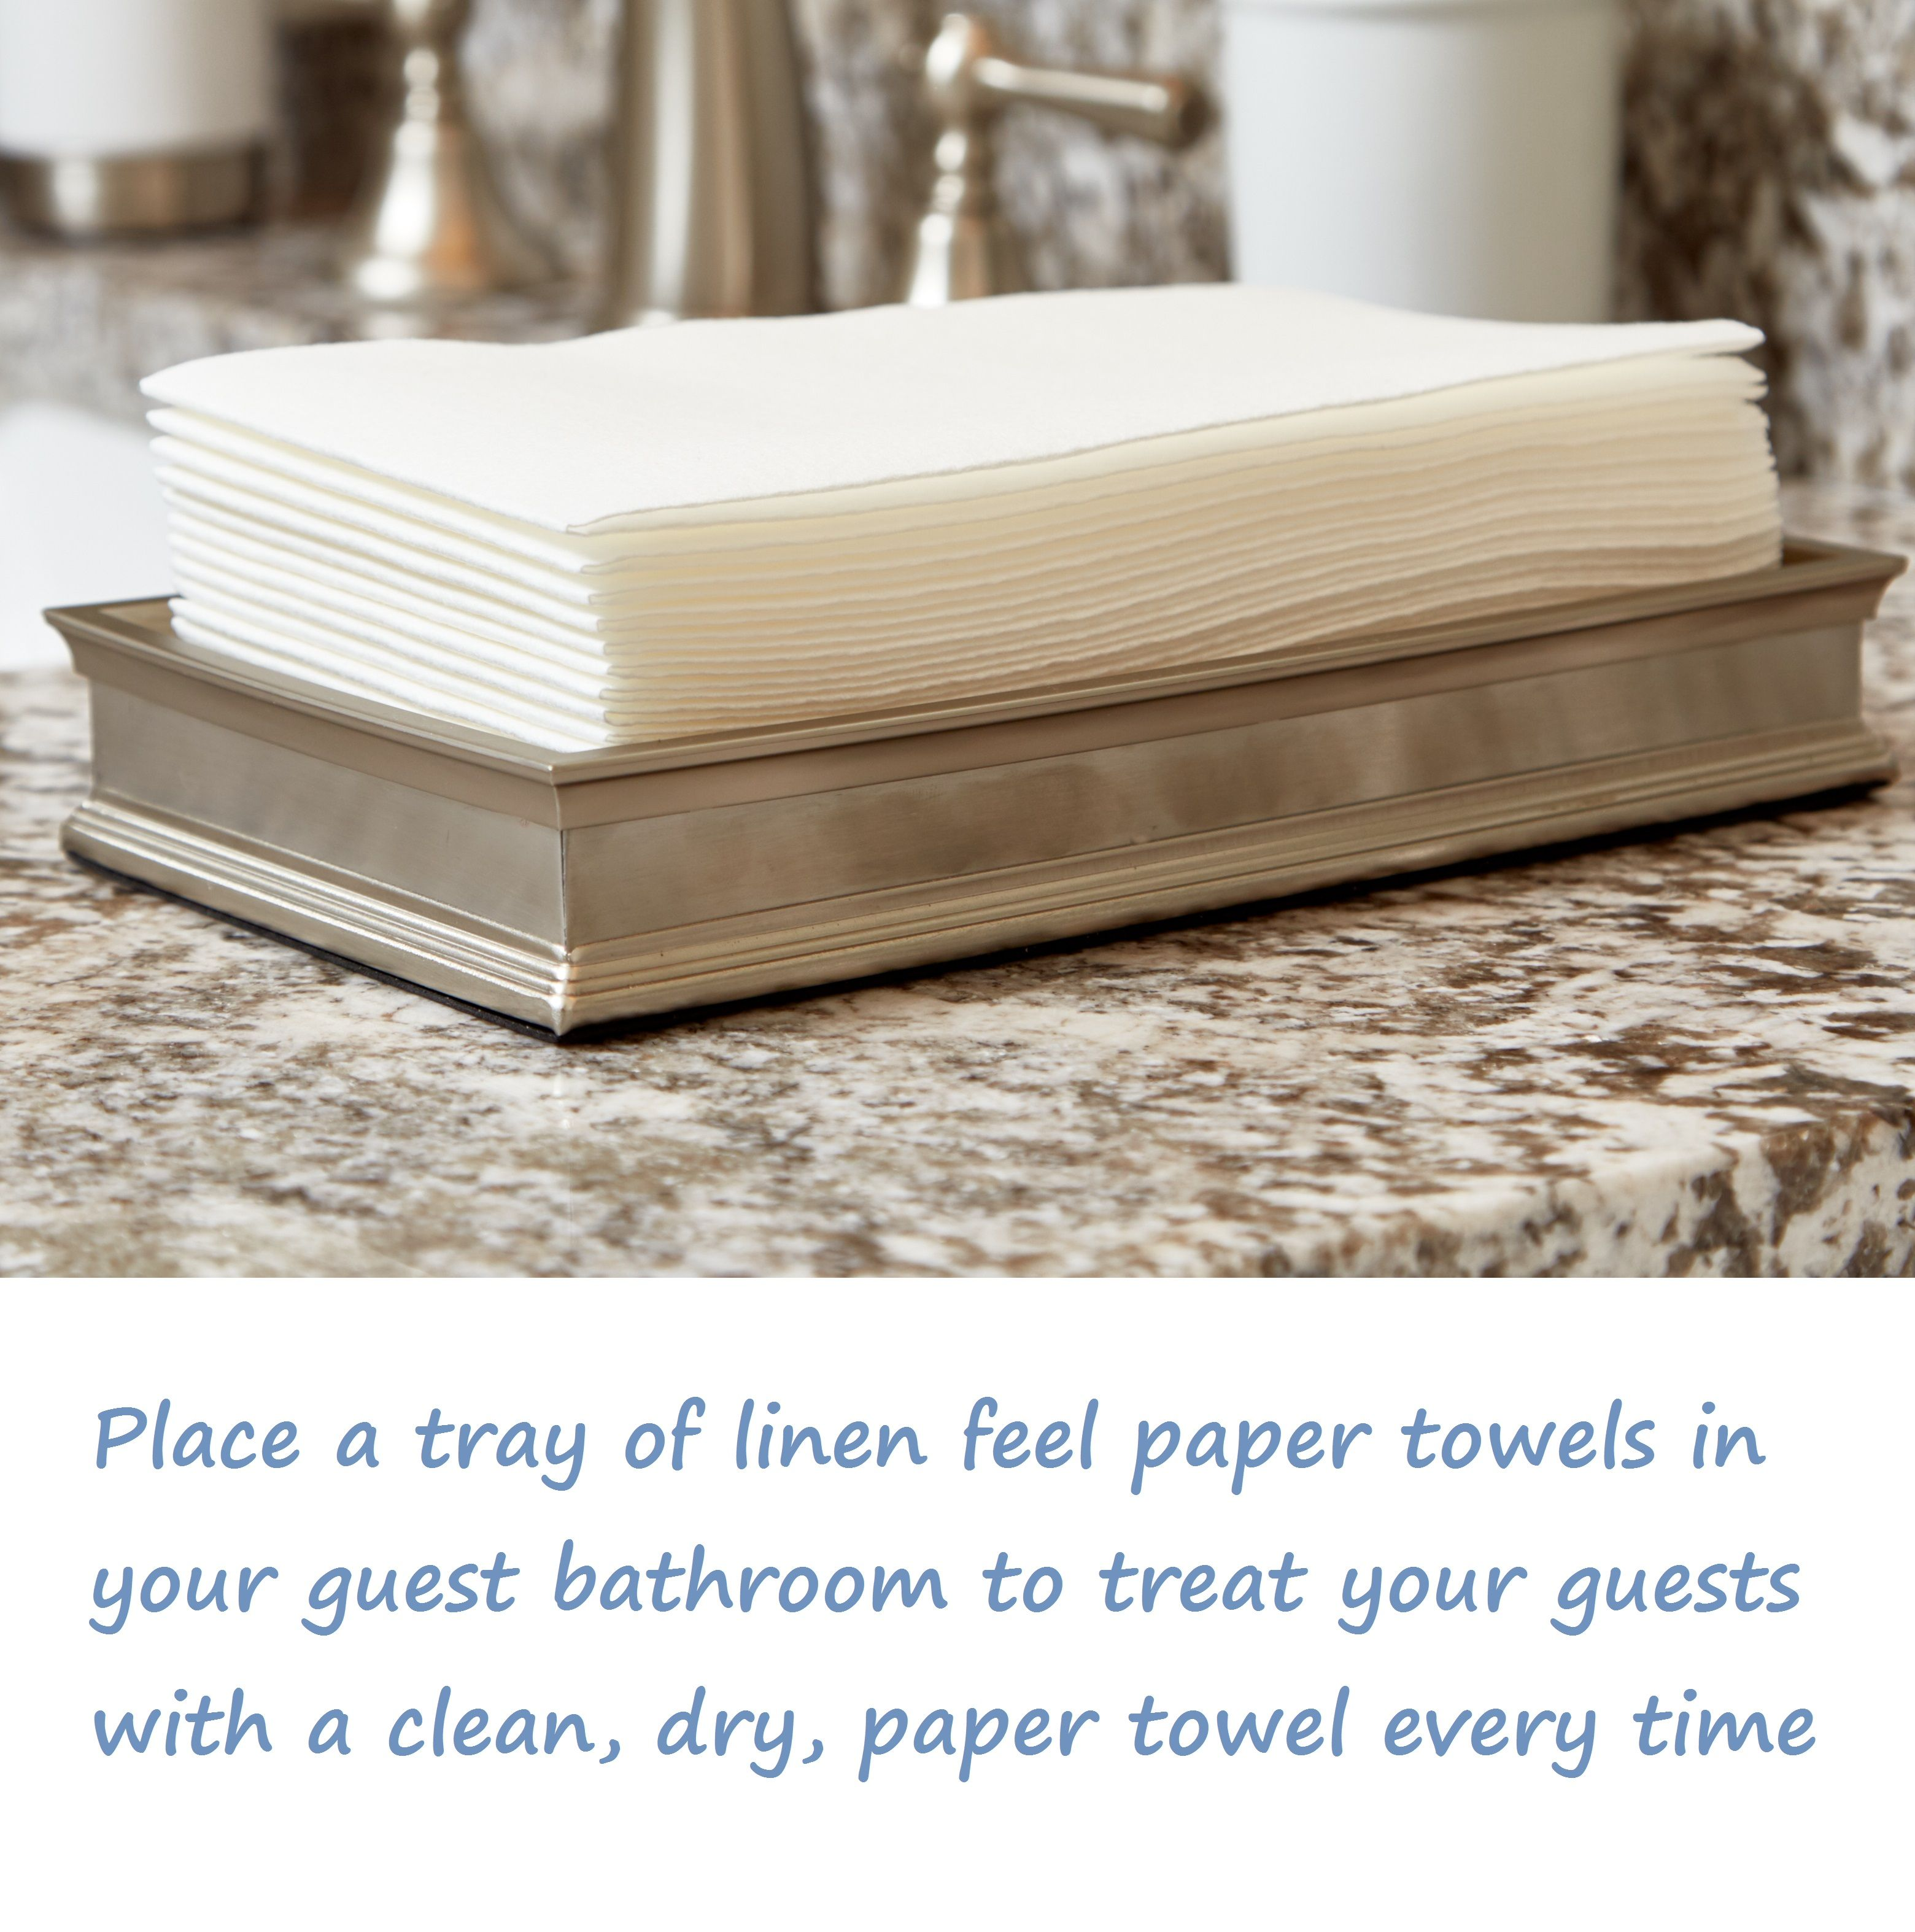 Pampering Your Guests Had Never Been Easier Just Place A Tray Of Linen Feel Paper Towels In Your Guest Bathroom And Voila No Mo Linen Feel Guest Towels Towel